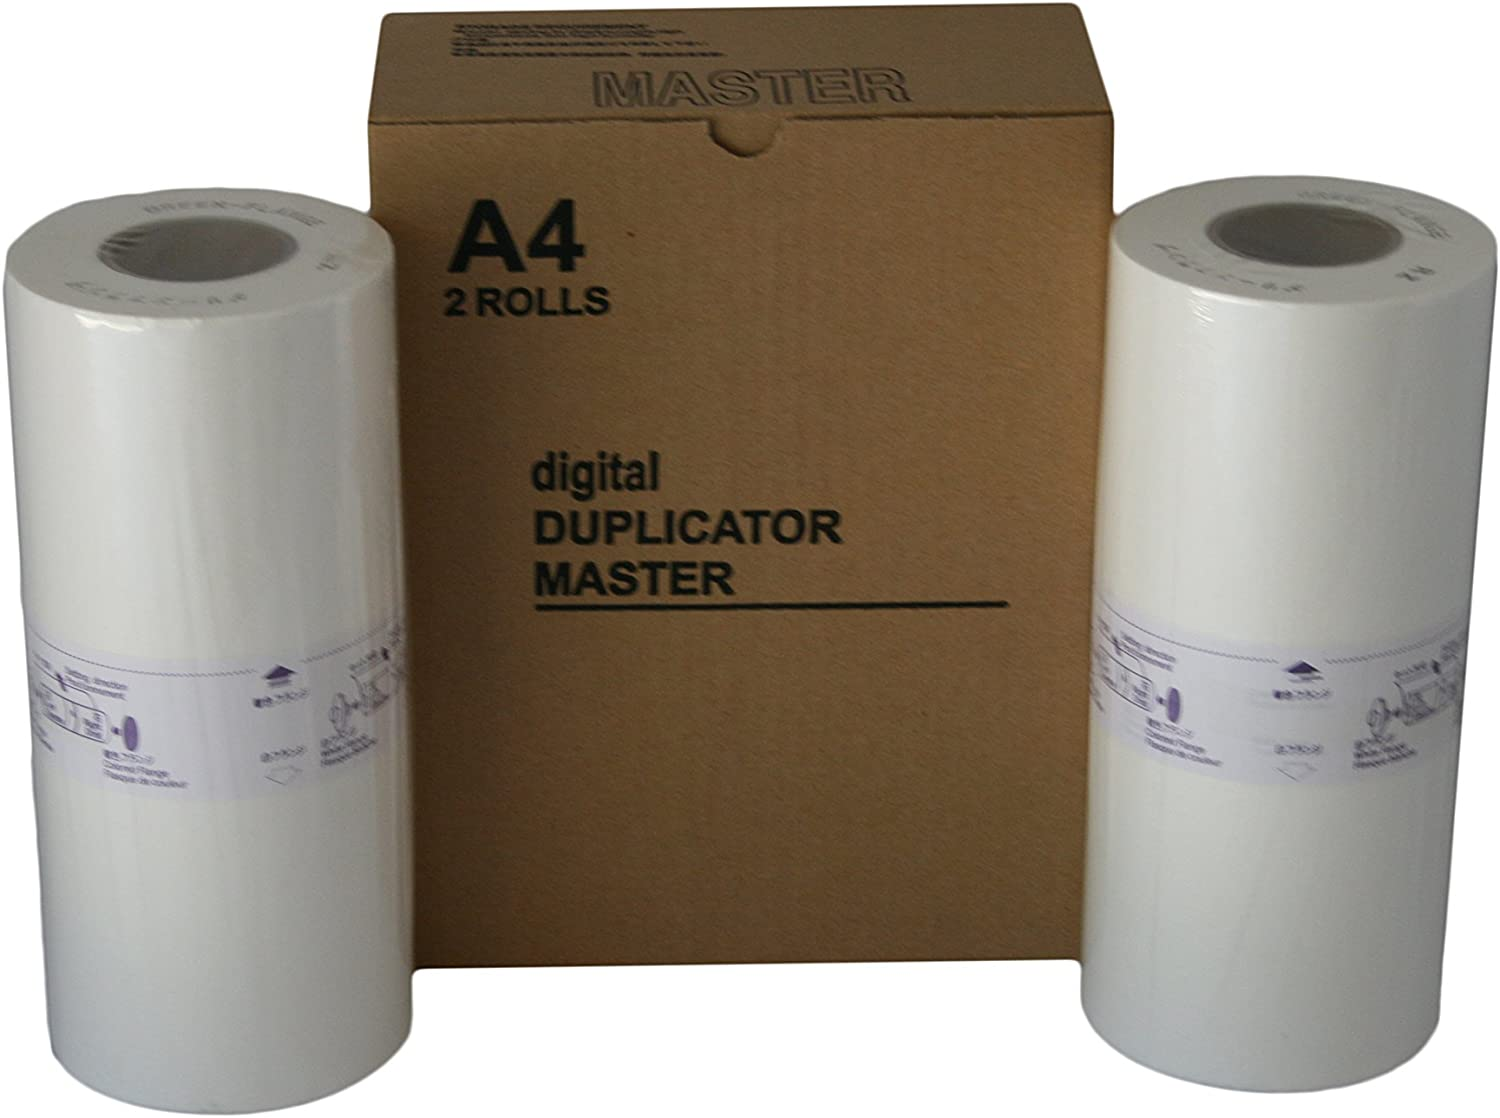 2 Wholesale Widgets S-4250 Master Rolls Compatible with Riso S4250 A4 for Use in Riso EZ220, RZ220, RZ230, and RZ310 Duplicators RISS4250C